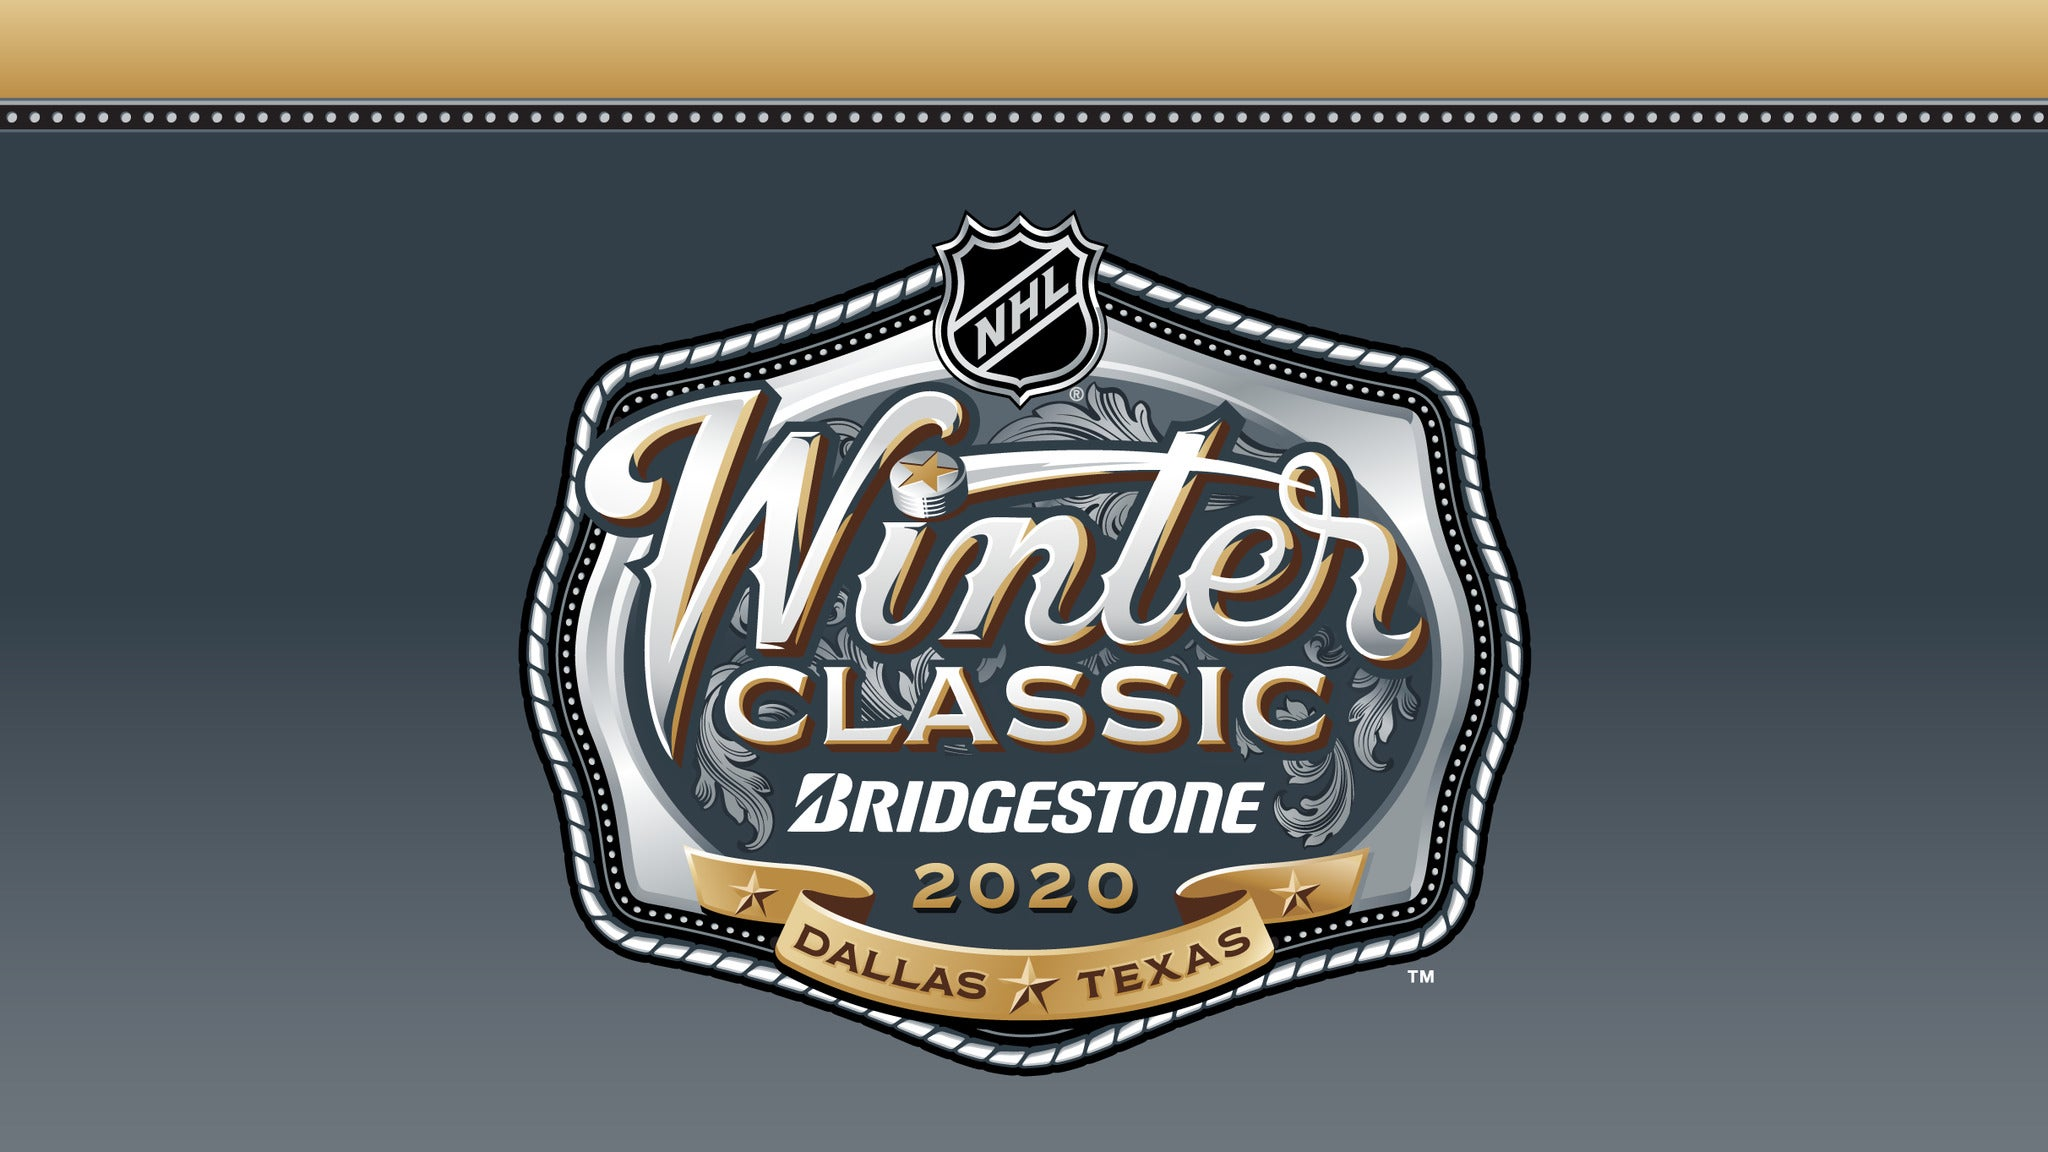 Nhl Outdoor Games 2020.Bridgestone Nhl Winter Classic Tickets Single Game Tickets Schedule Ticketmaster Com